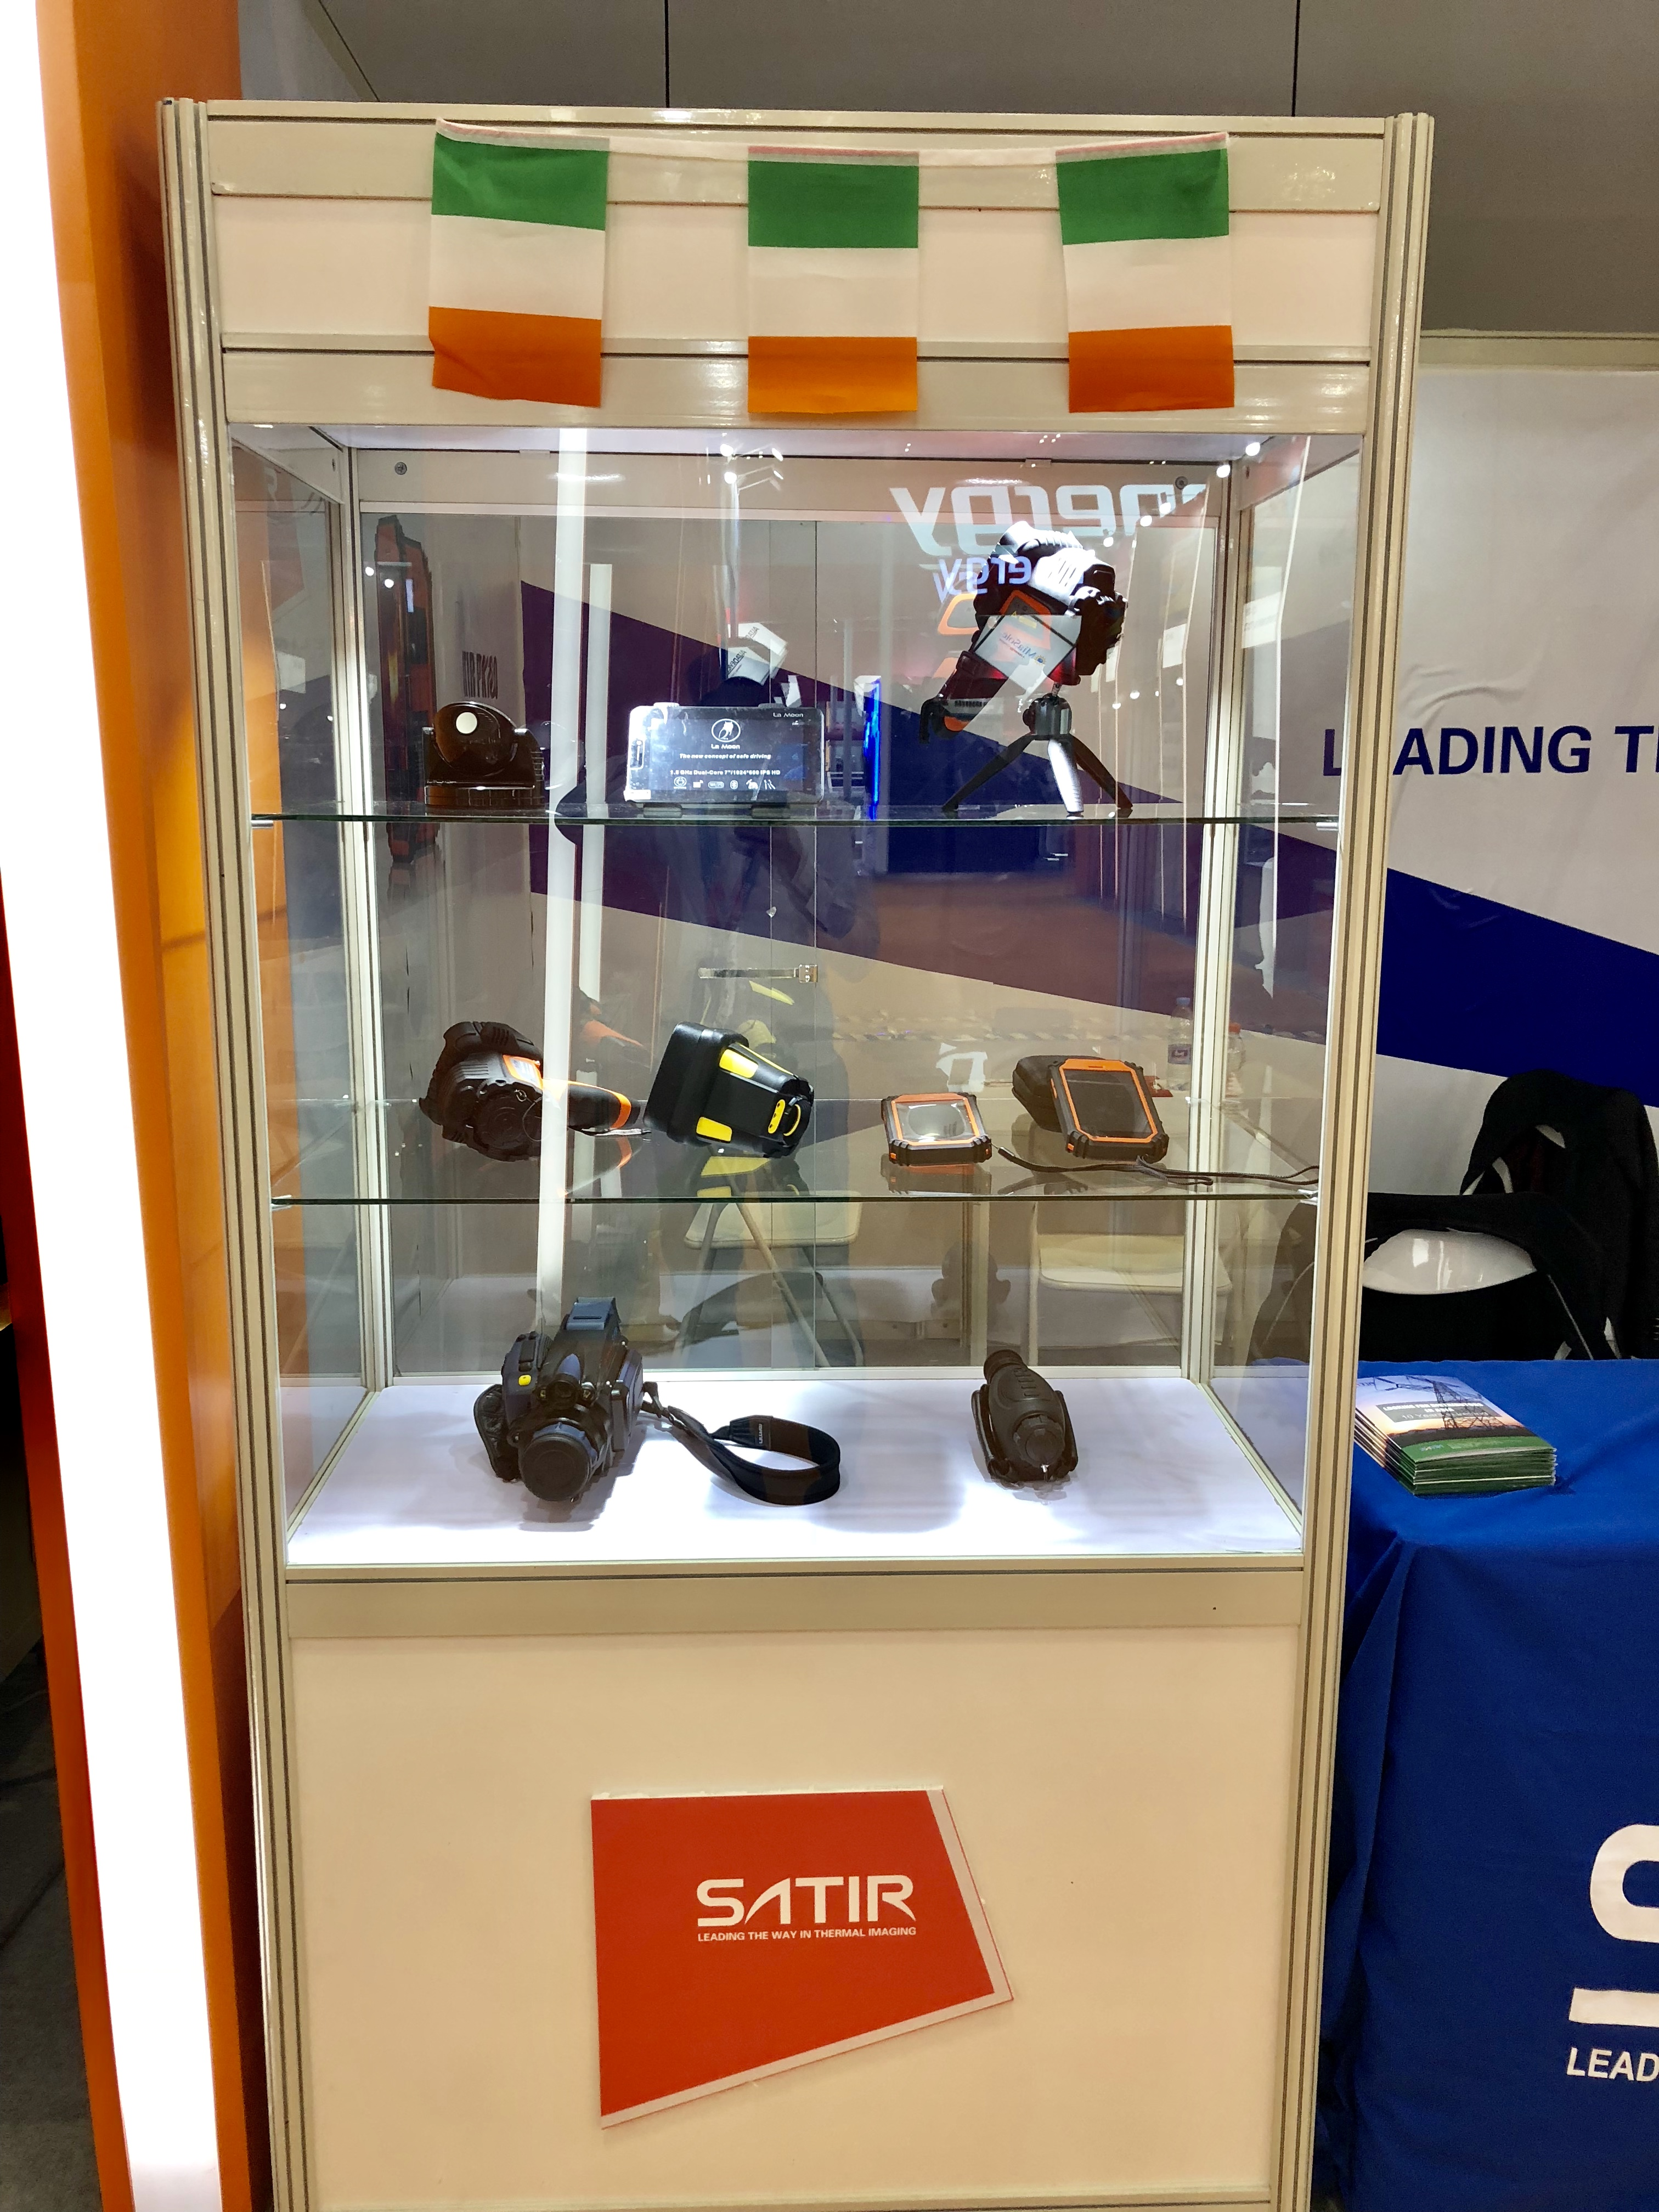 satir thermal imaging cameras displayed at CIIE